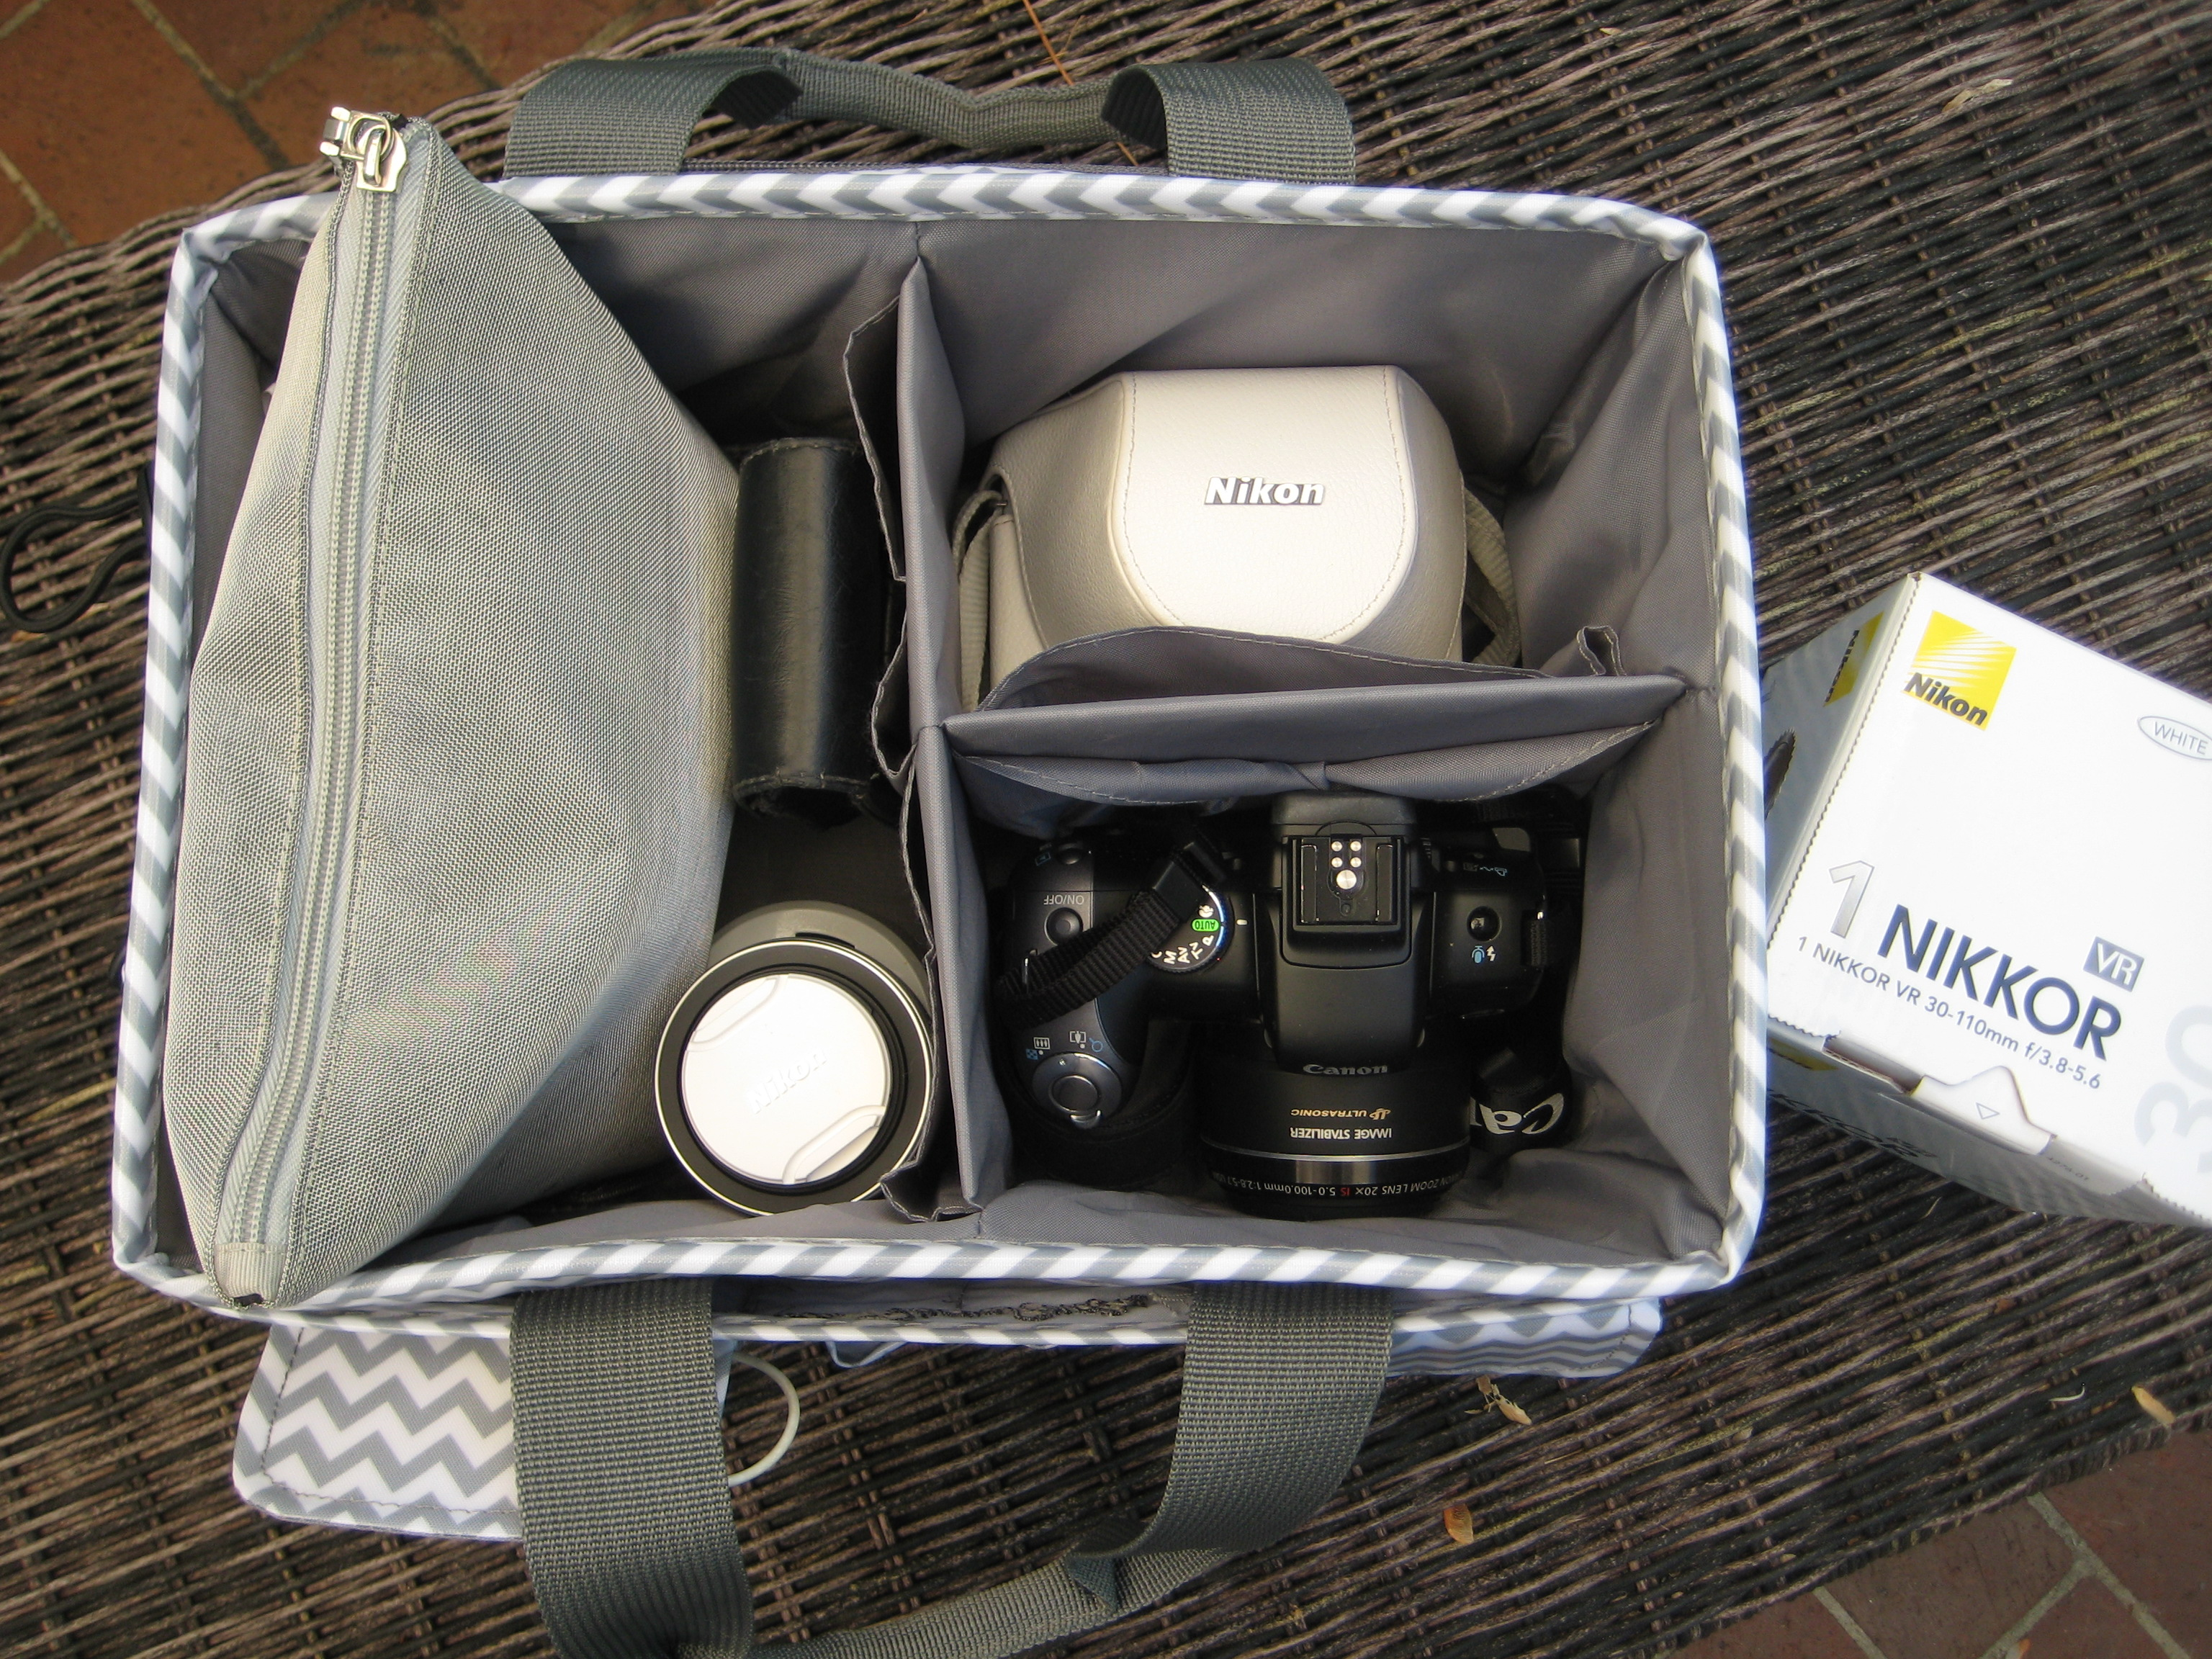 The Paper Studio Organizer used for cameras